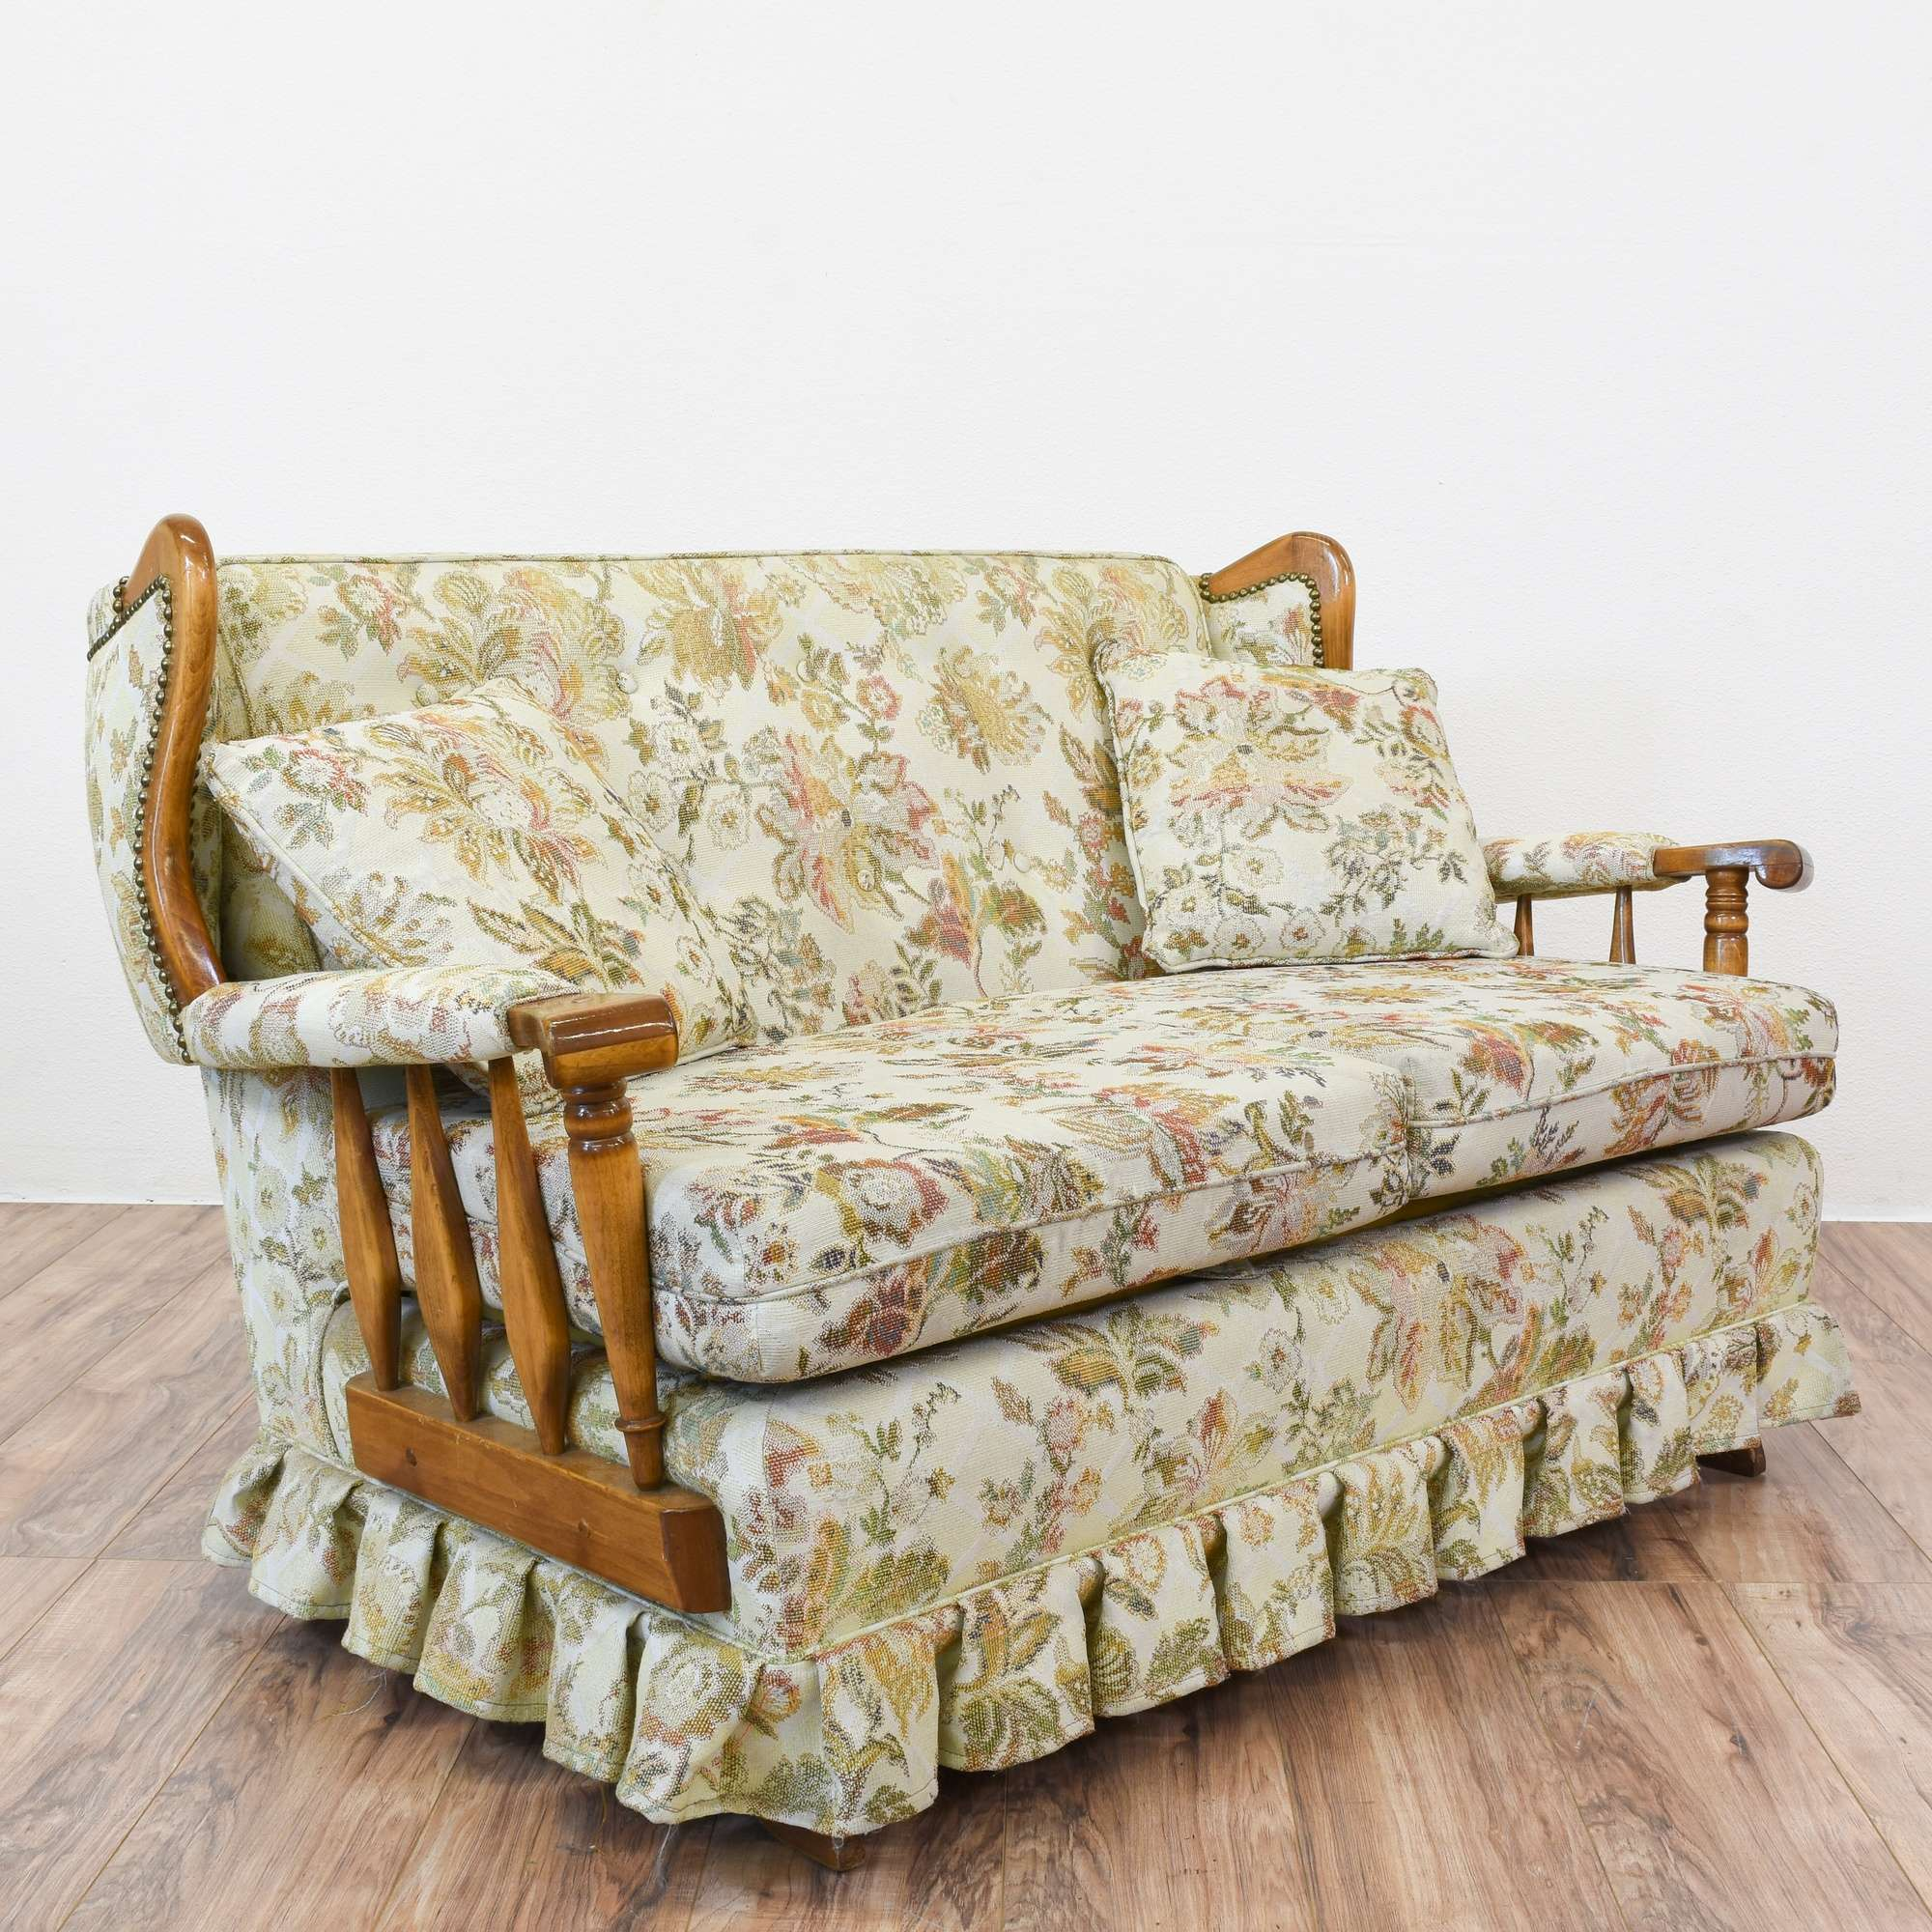 Floral Country Rocking Sofa Loveseat